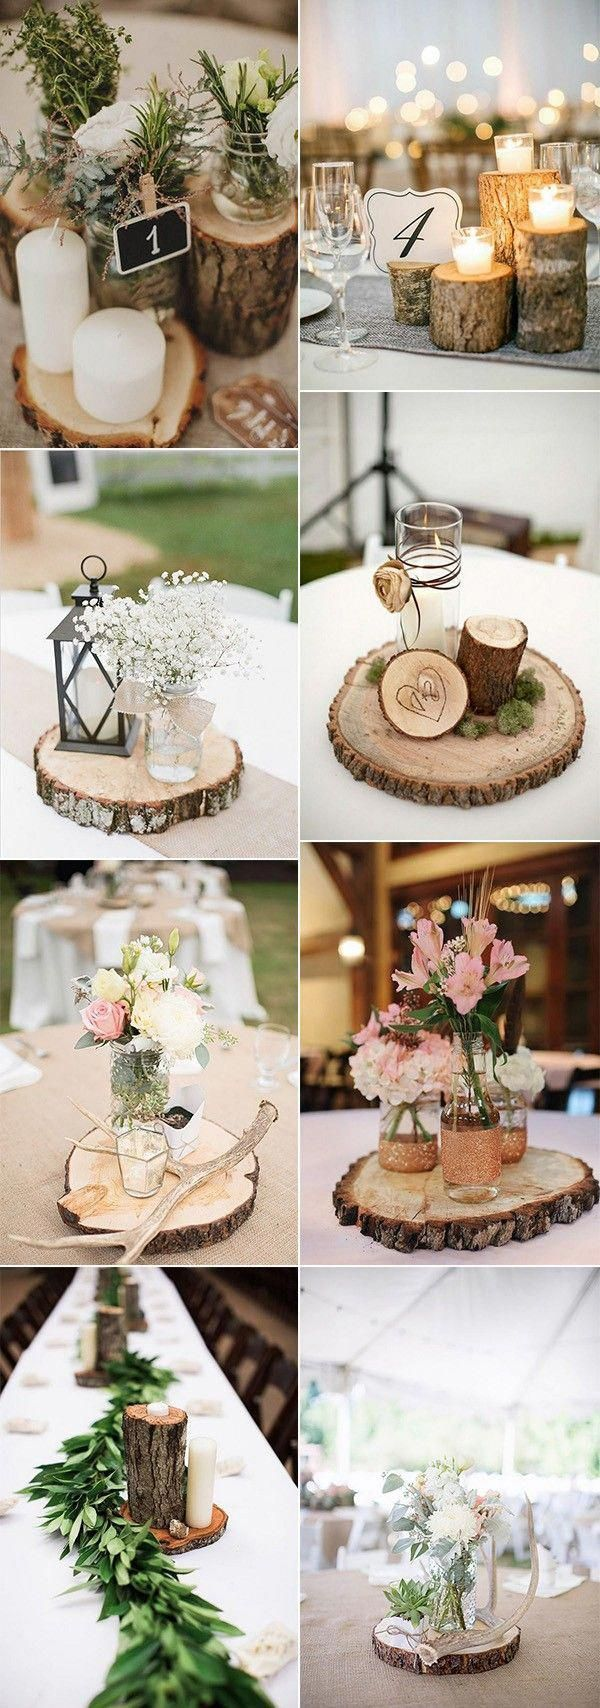 These rustic wedding ideas are really great #rusticweddingideas #dekorationhochzeit